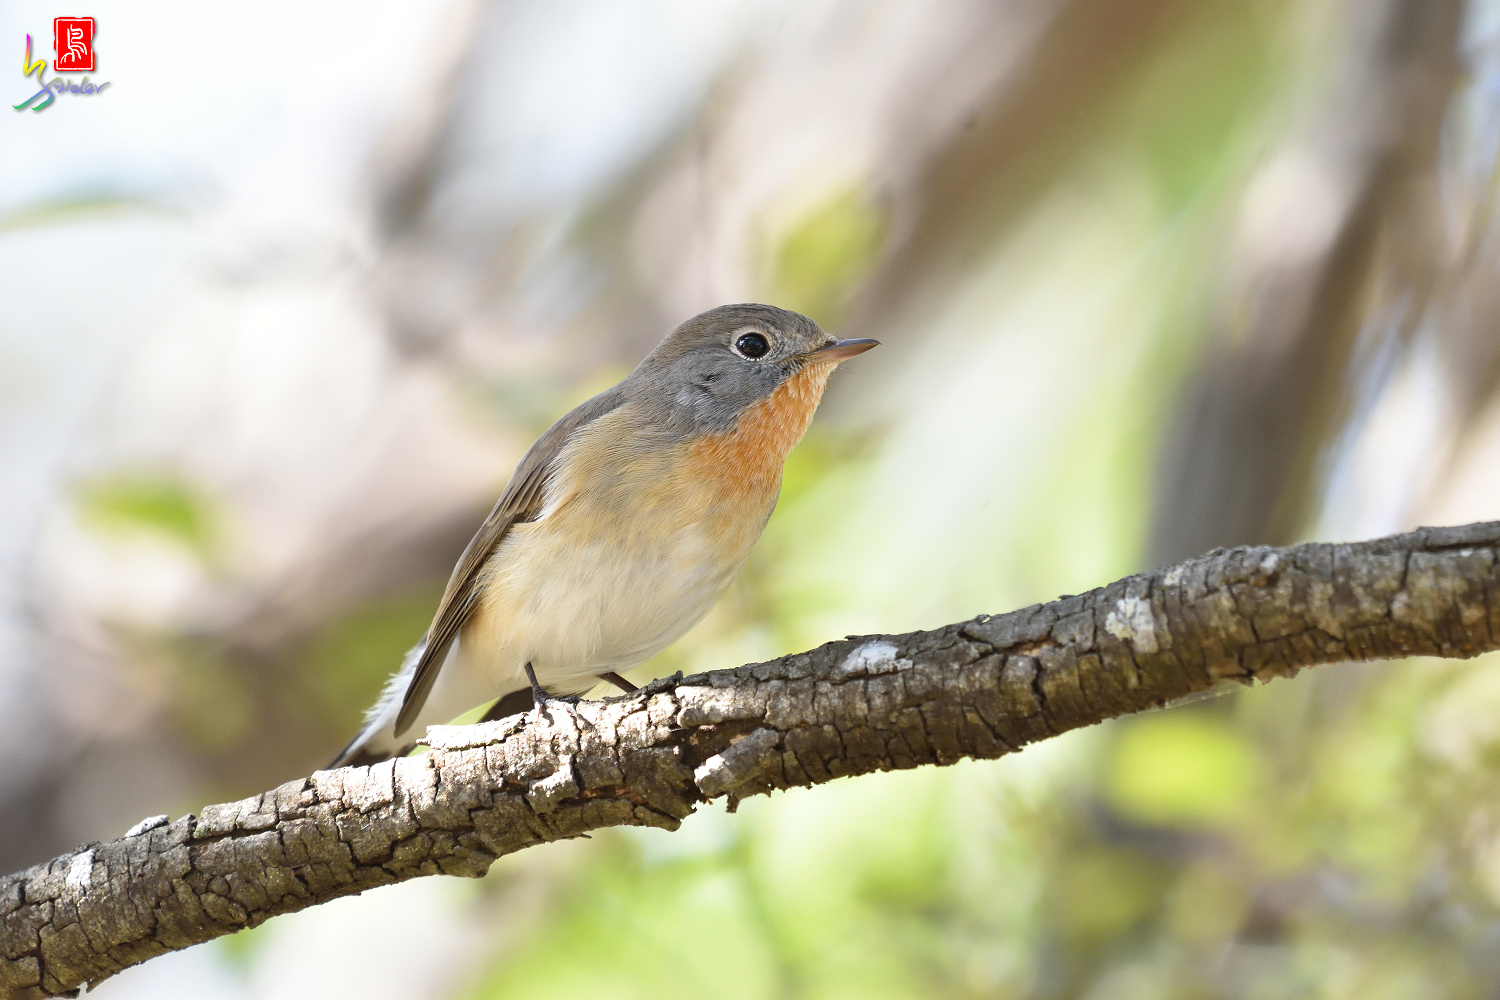 Red-breasted_Flycatcher_5846